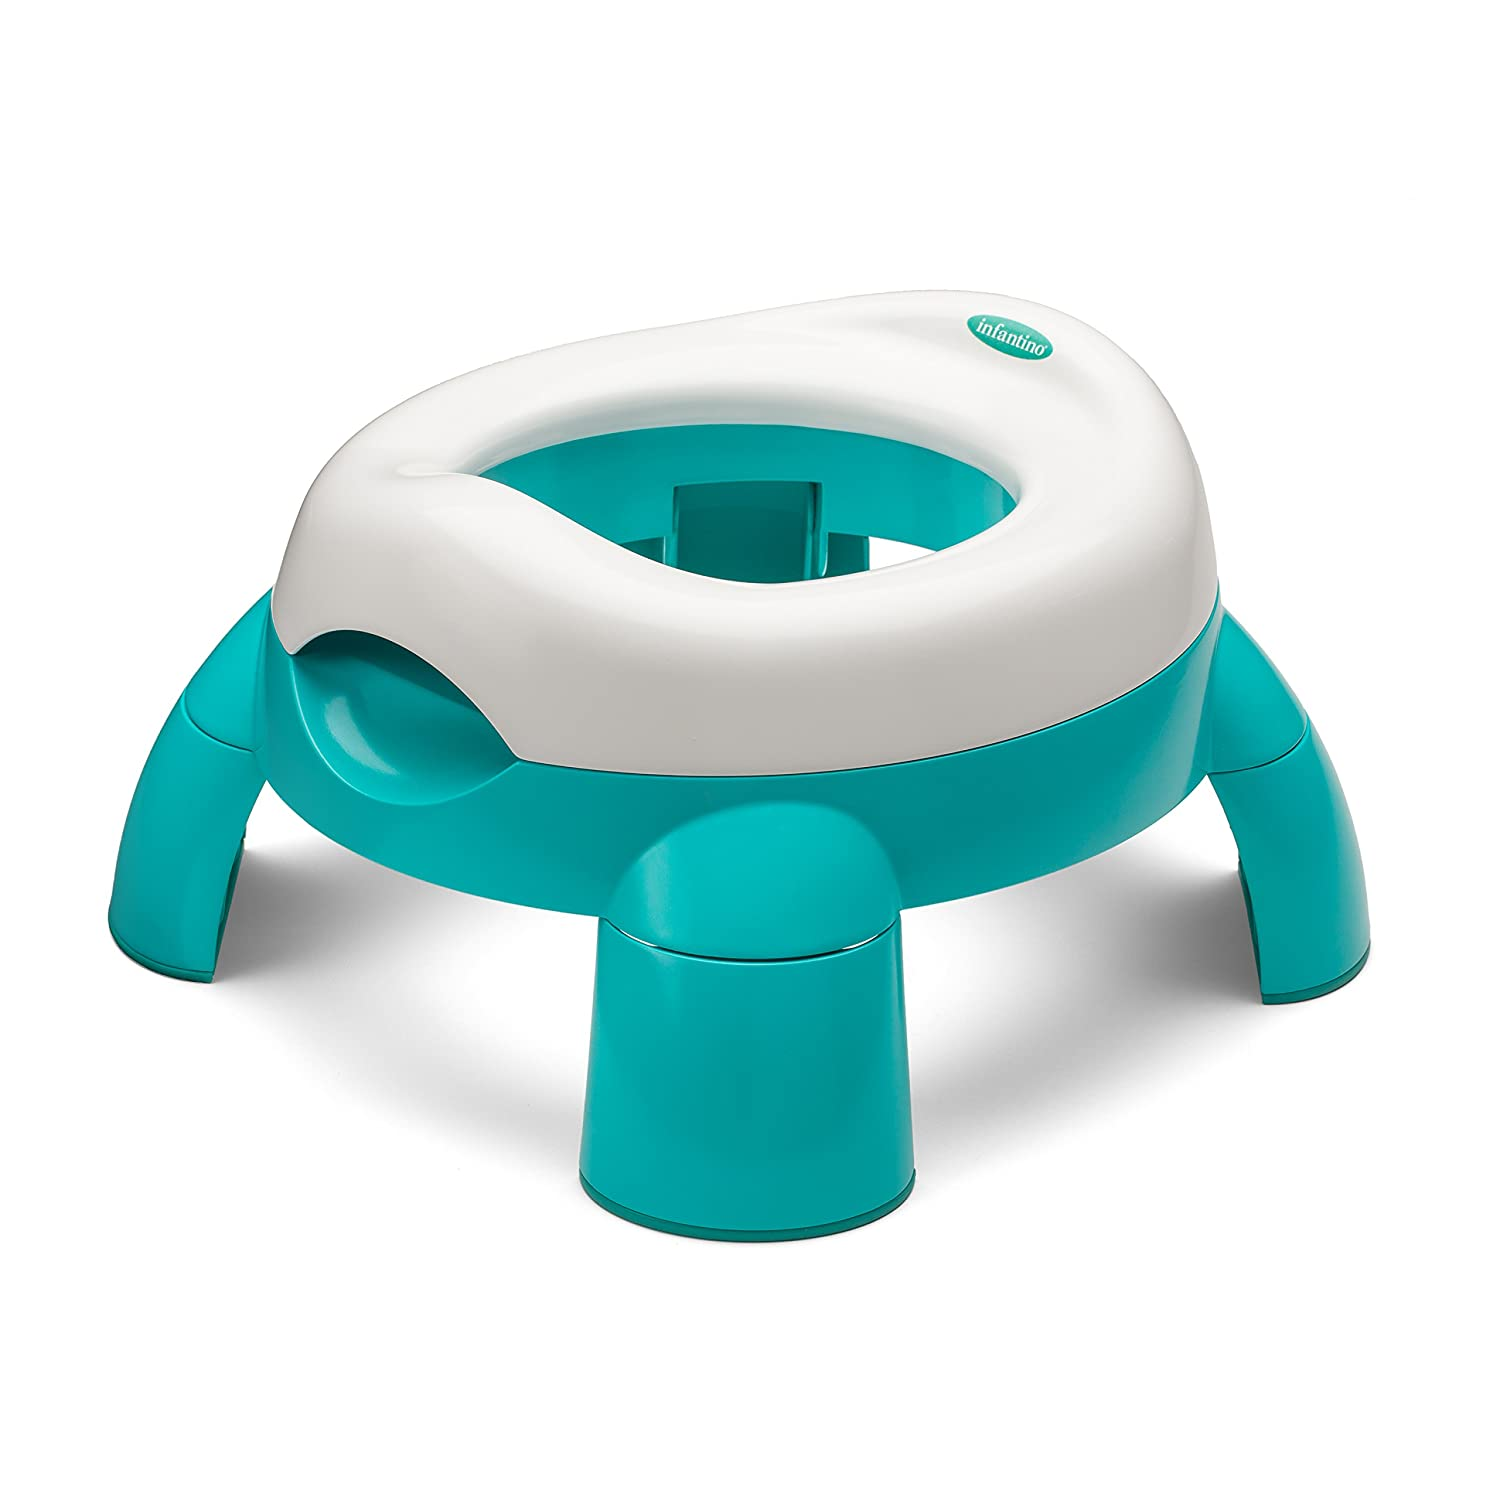 Infantino Up and Go Compact Travel Potty, Teal 206-280